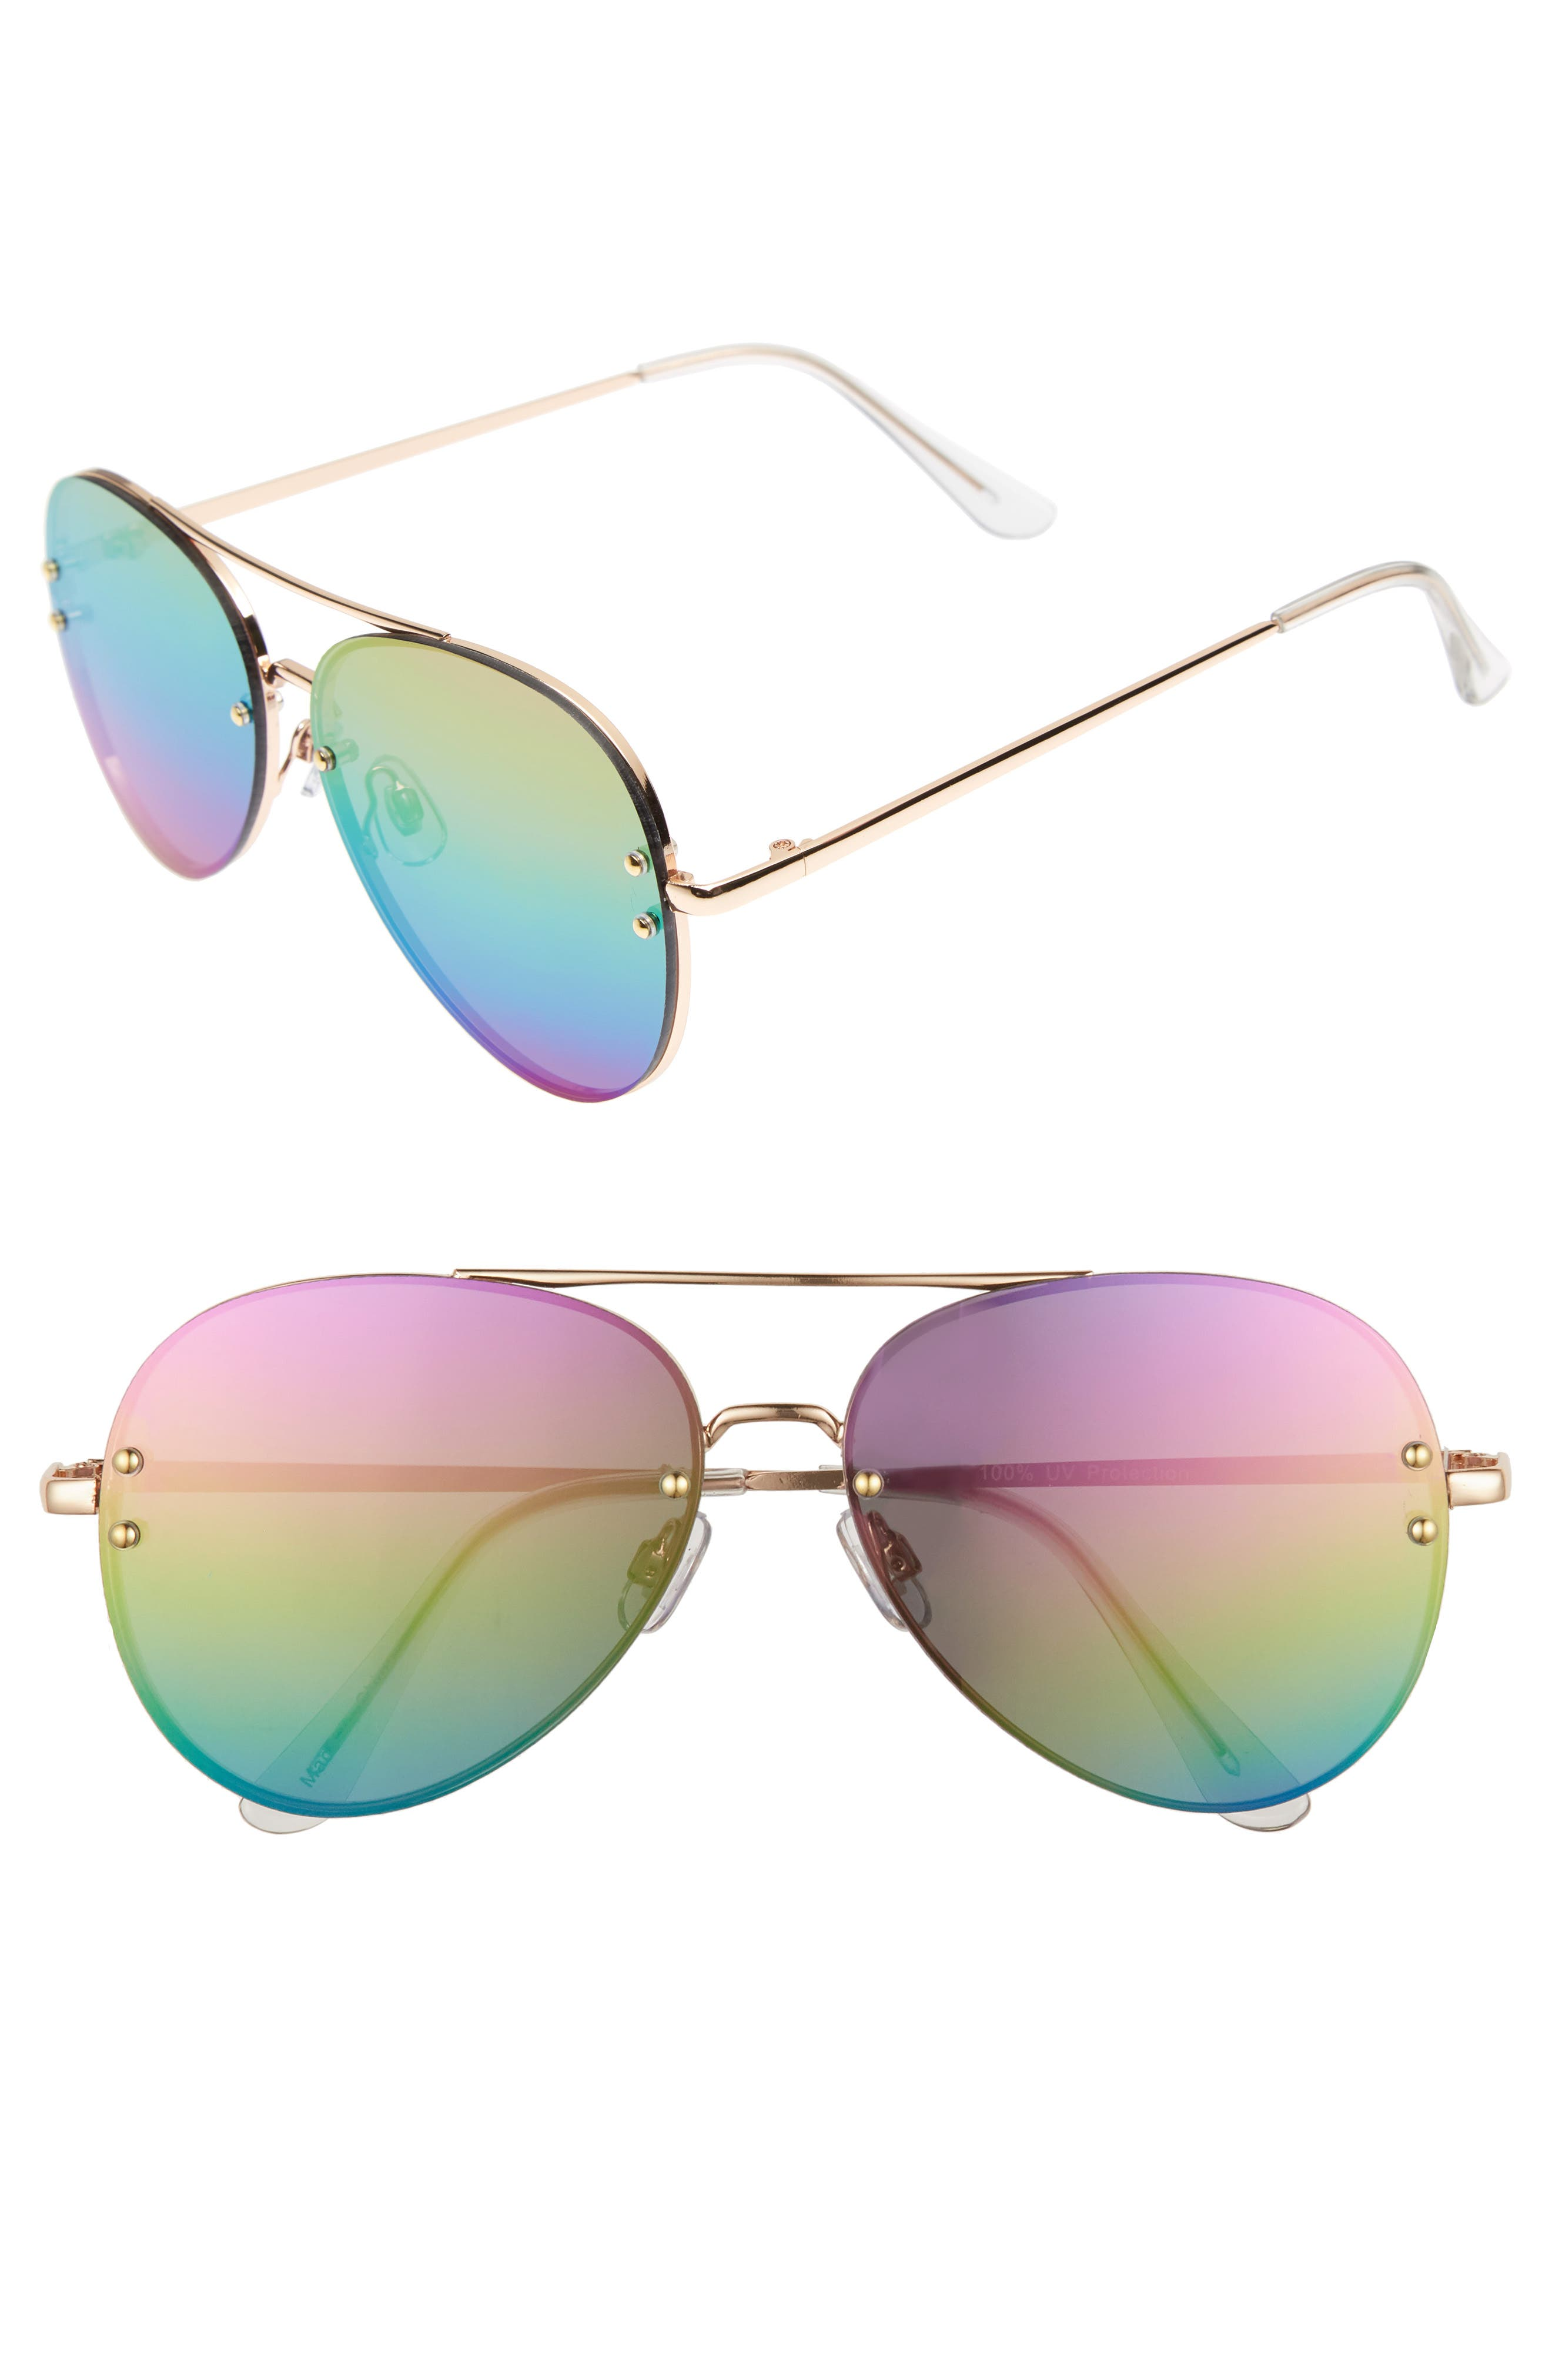 60mm Oversize Mirrored Aviator Sunglasses,                         Main,                         color, Gold/Rainbow